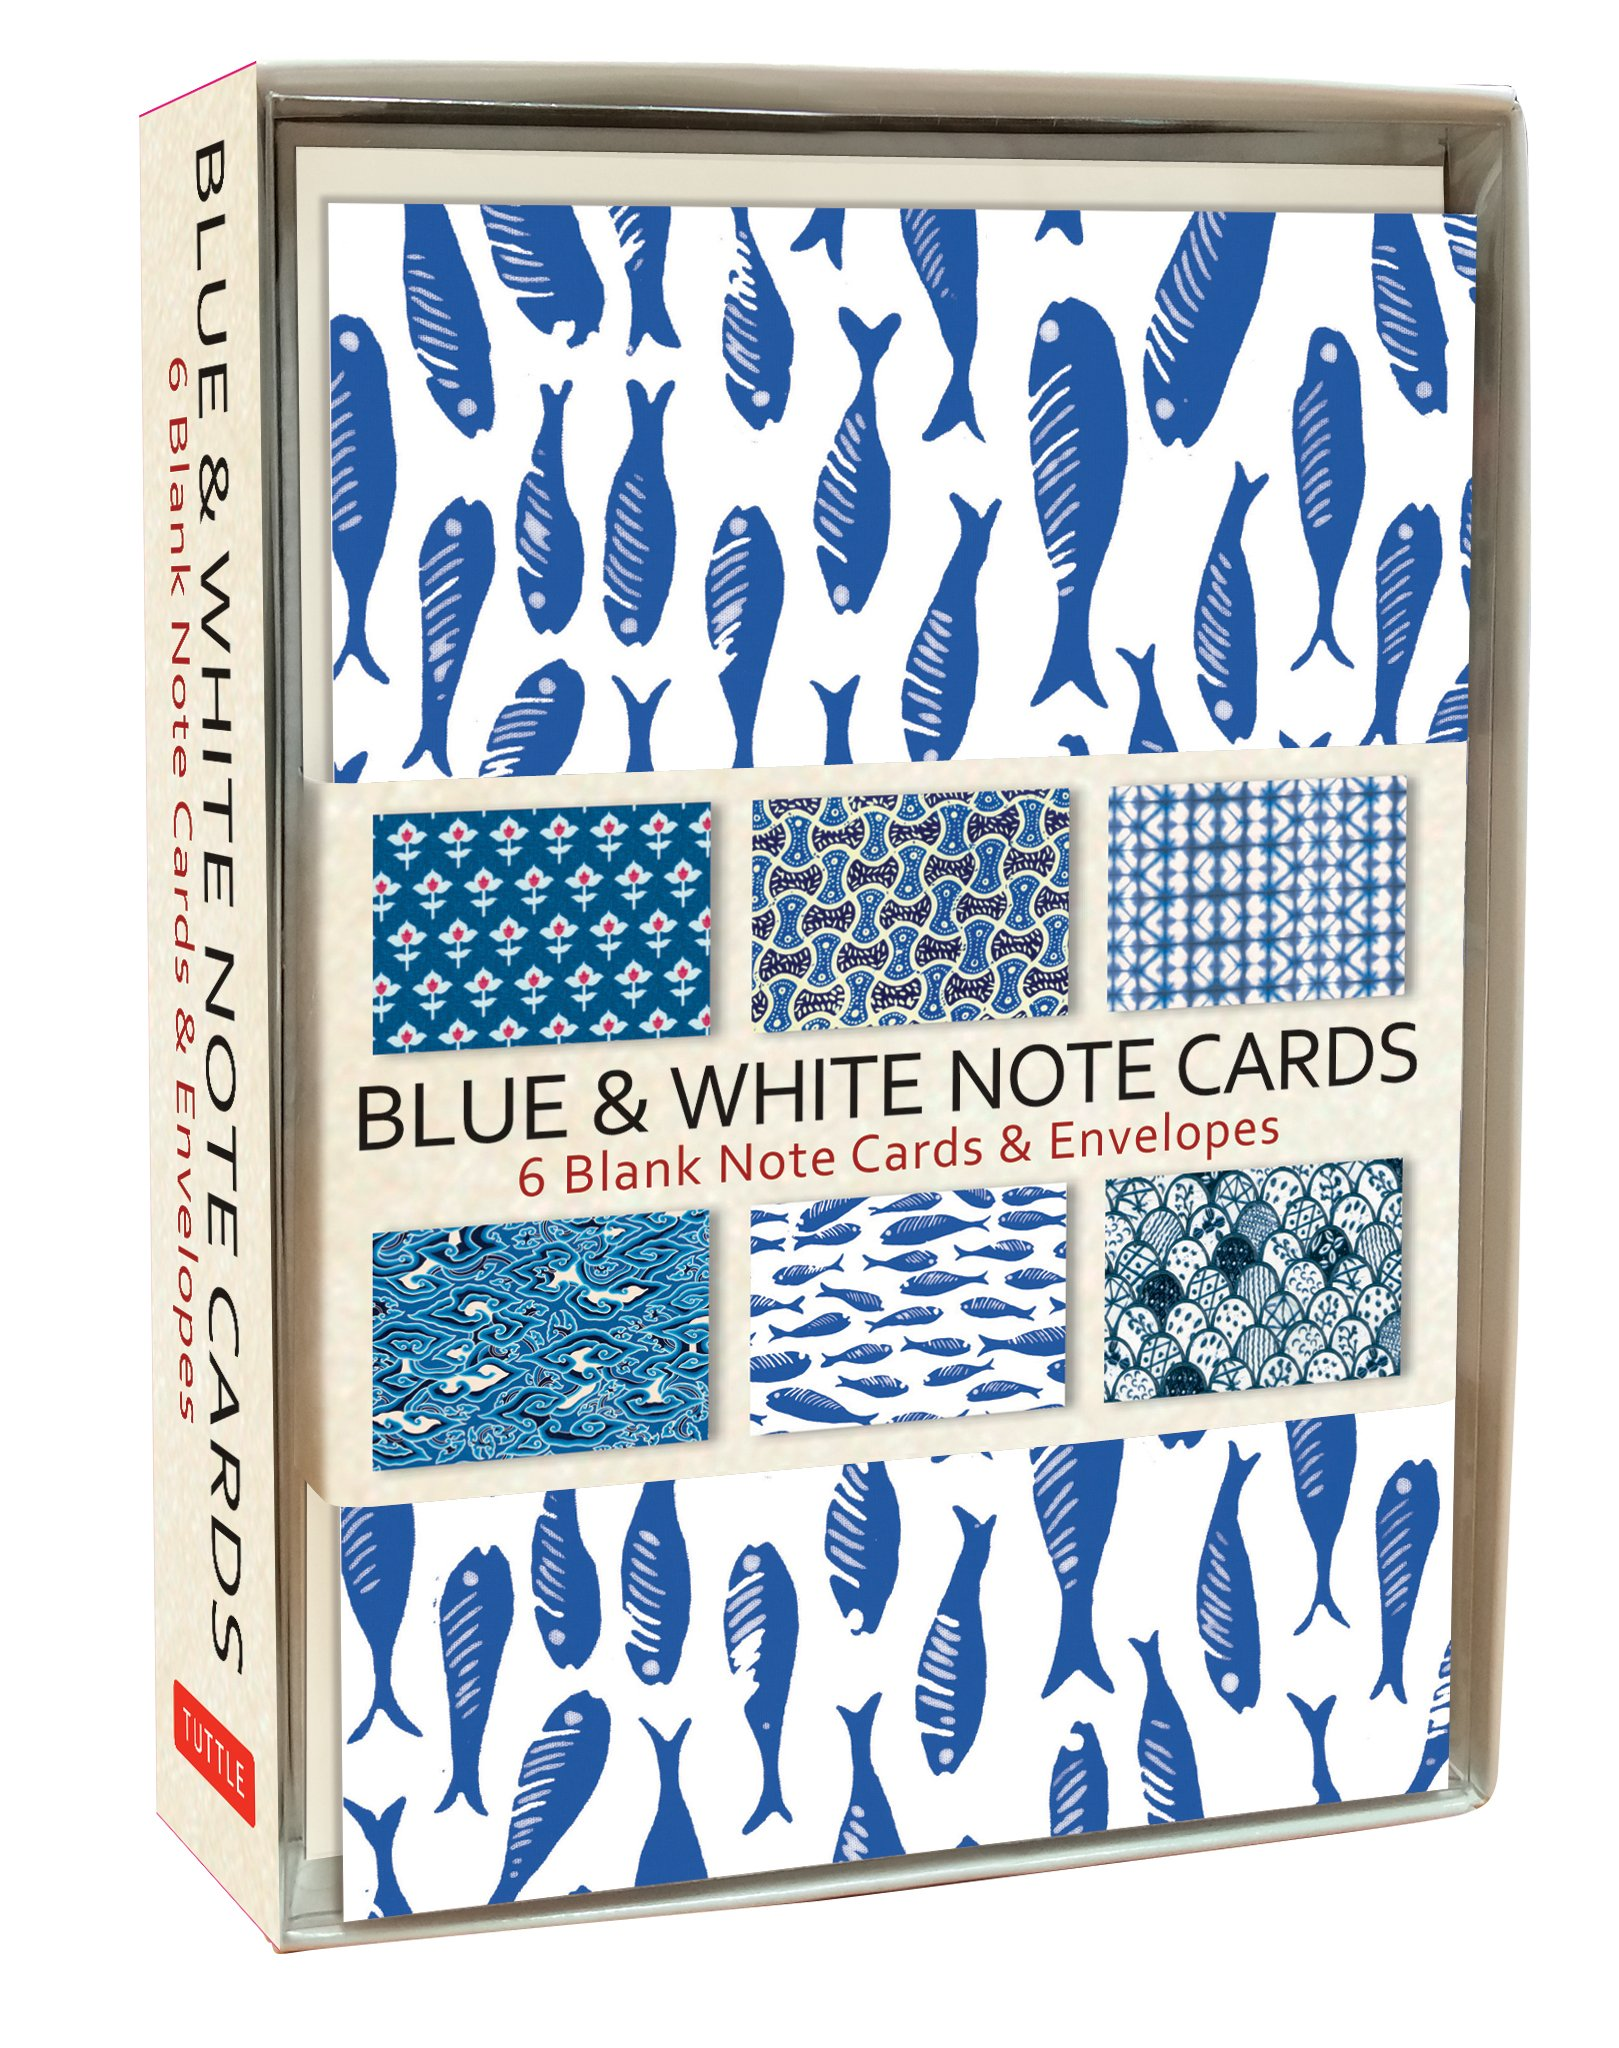 Read Online Blue & White Note Cards: 6 Blank Note Cards & Envelopes (4 x 6 inch cards in a box) pdf epub